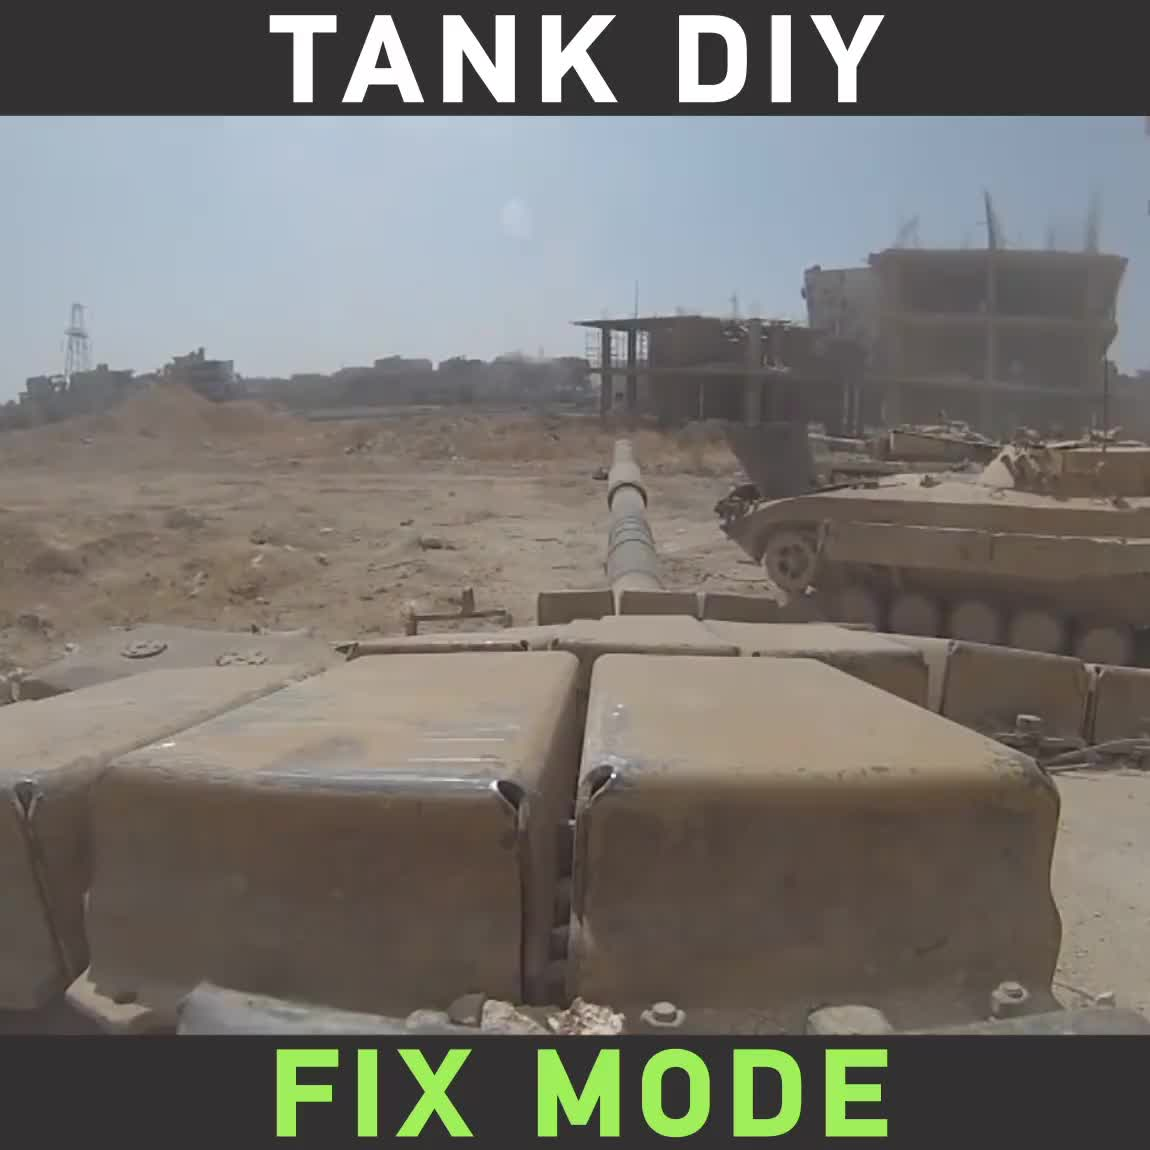 Mutli-purpose tank barrel. join list: Combat (611 subs)Mention Clicks: 21588Msgs Sent: 89706Mention History.. Adding the speech bubbles to this video is the most pathetic attempt at memeing I've ever seen. Makes me angrier than it should.